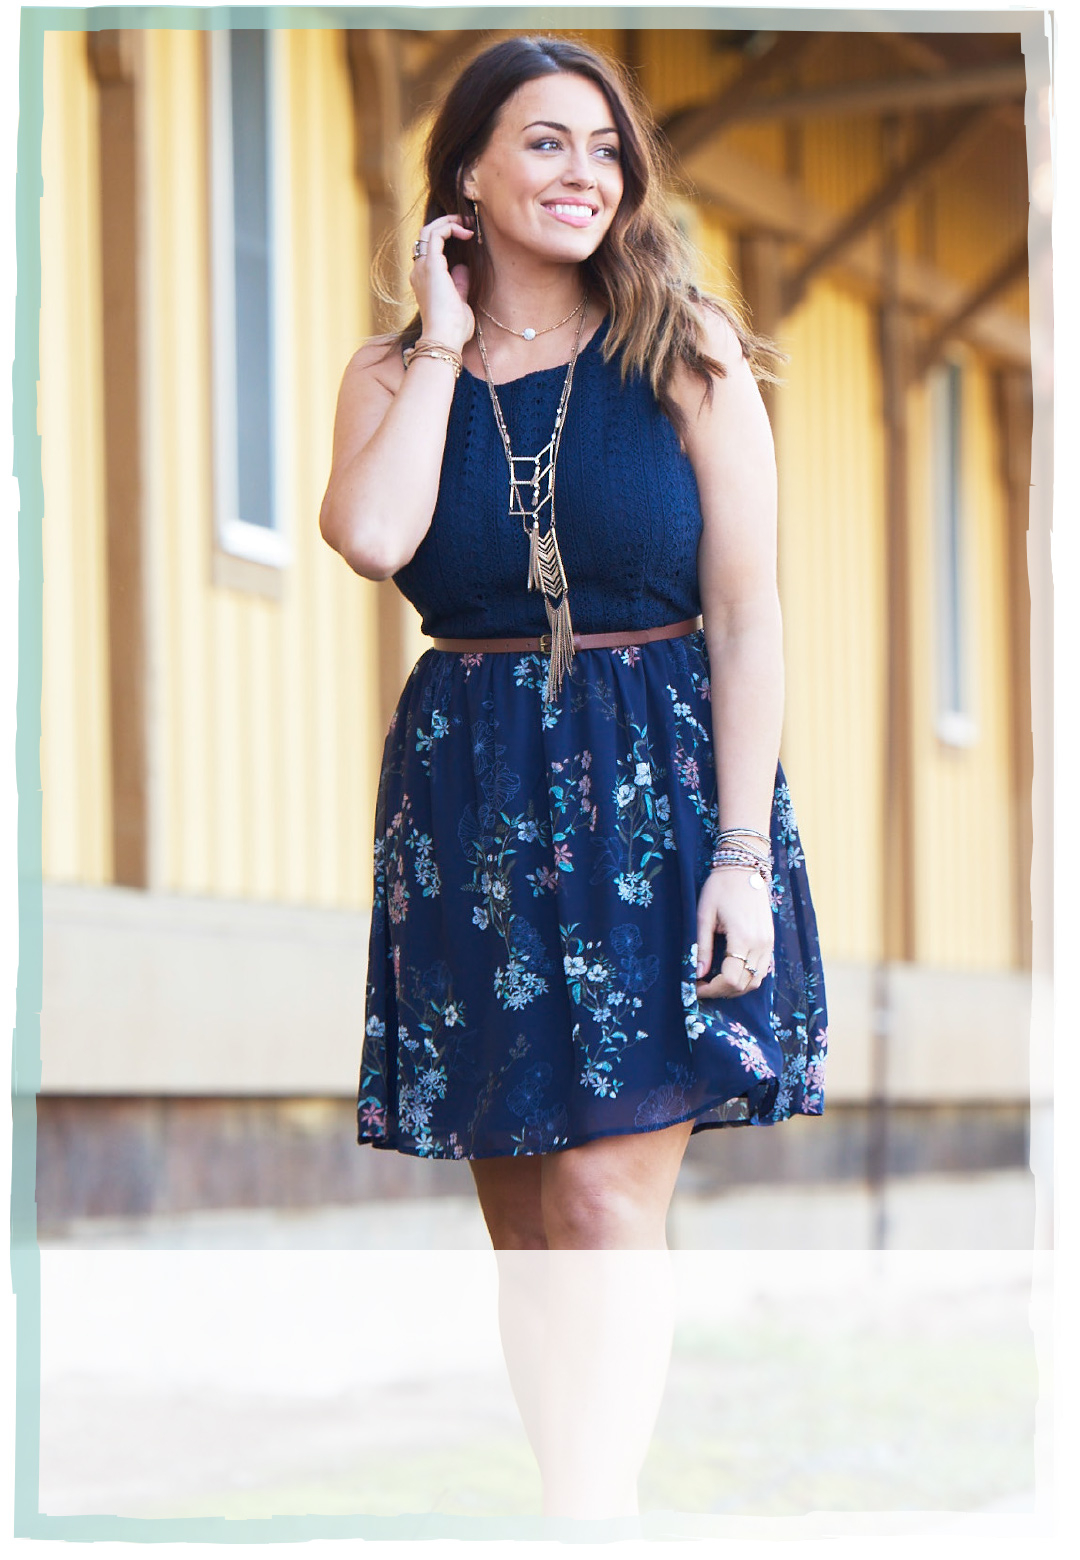 20+ Maurices Plus Size Outfits Pictures and Ideas on Weric